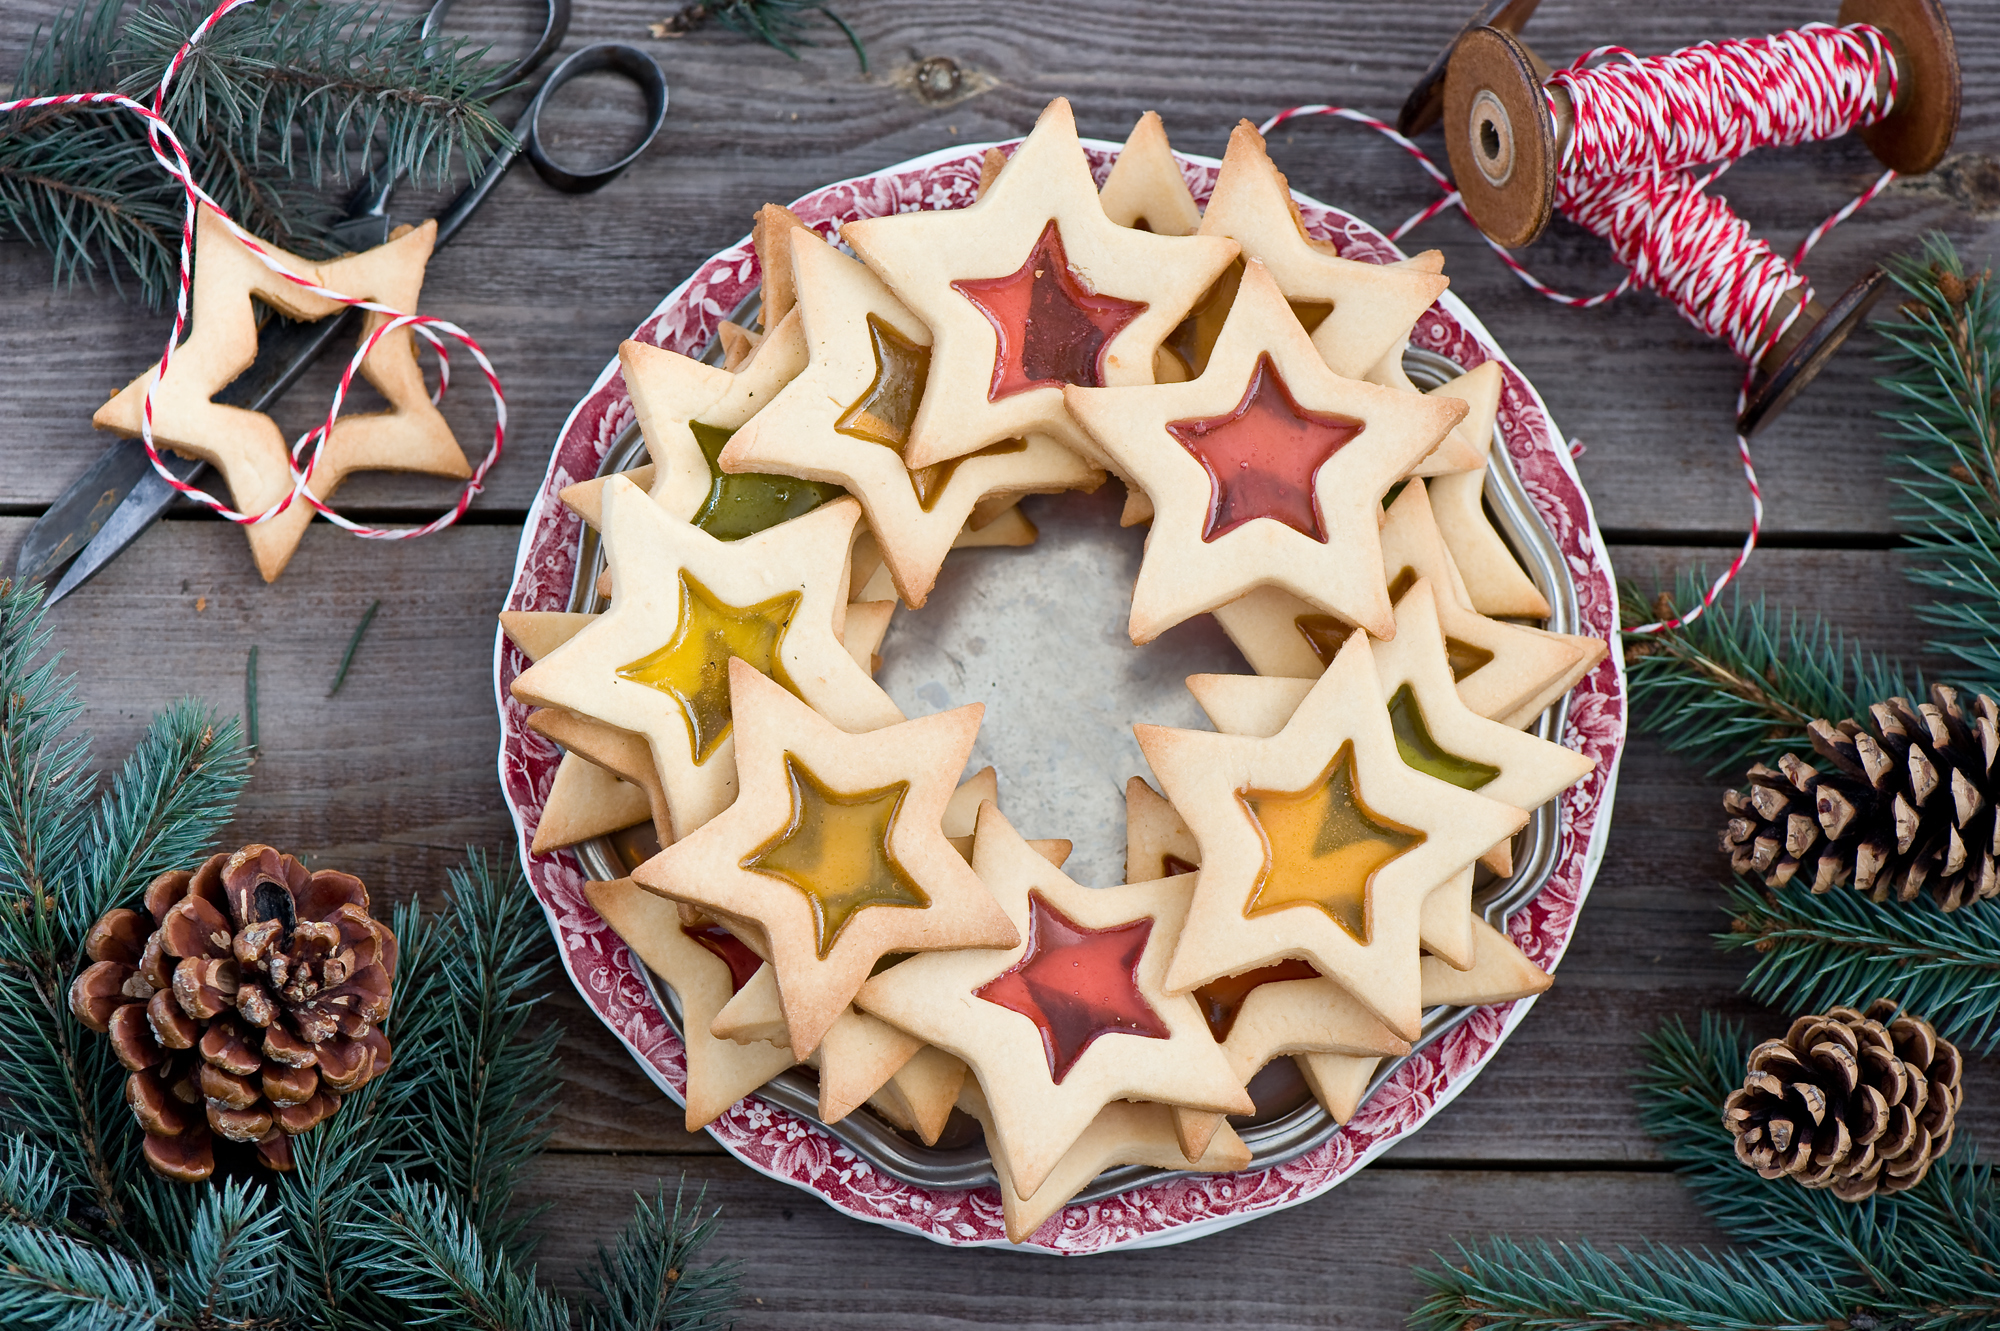 Christmas Cookies HD Wallpaper Background Image